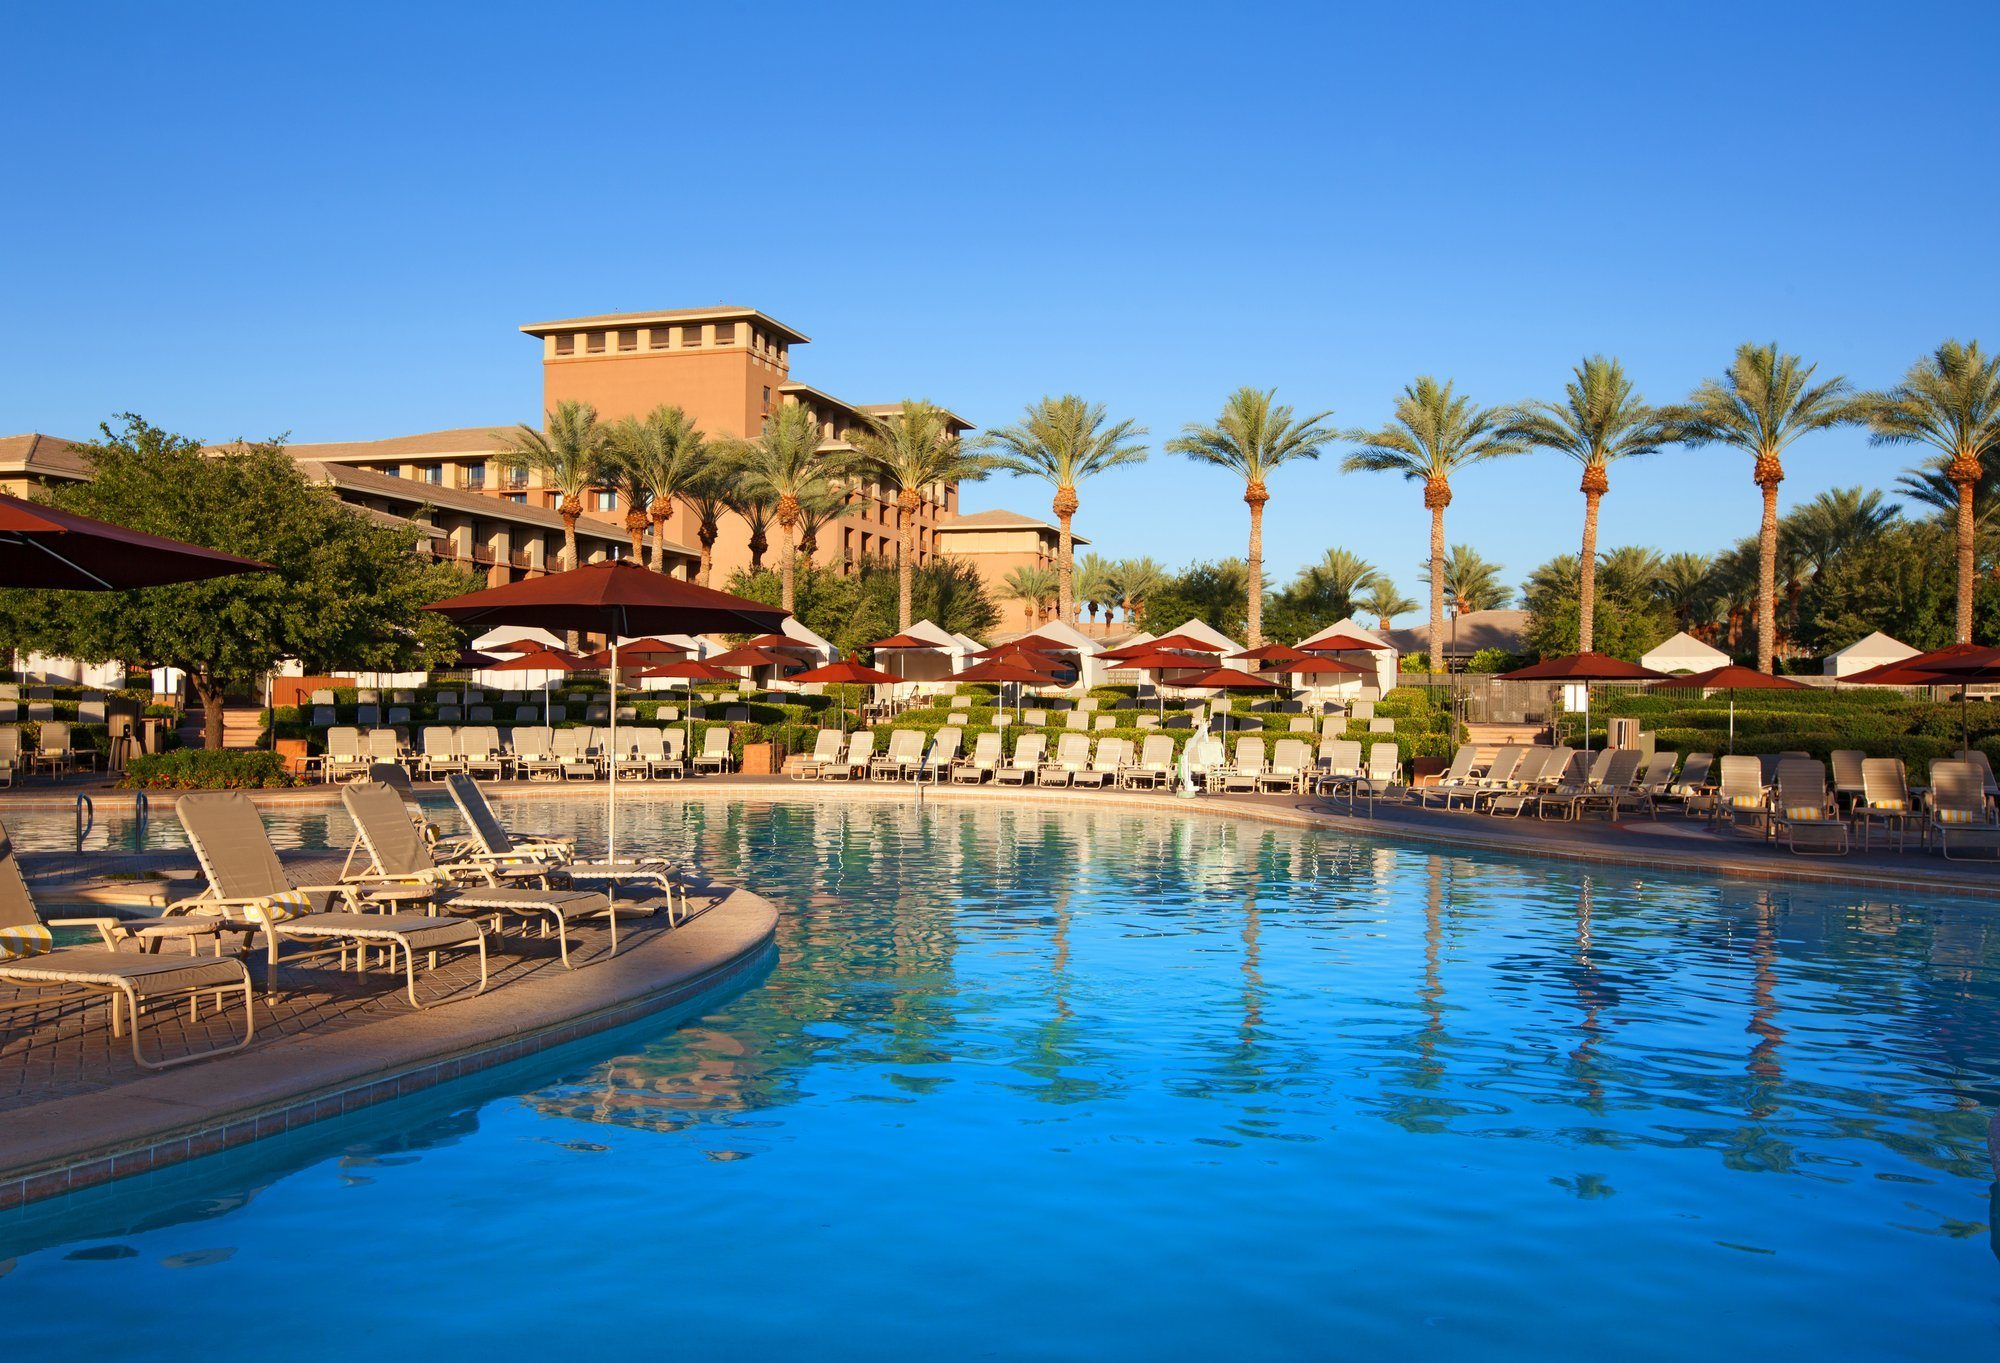 One of the pools at The Westin Kierland Resort & Spa